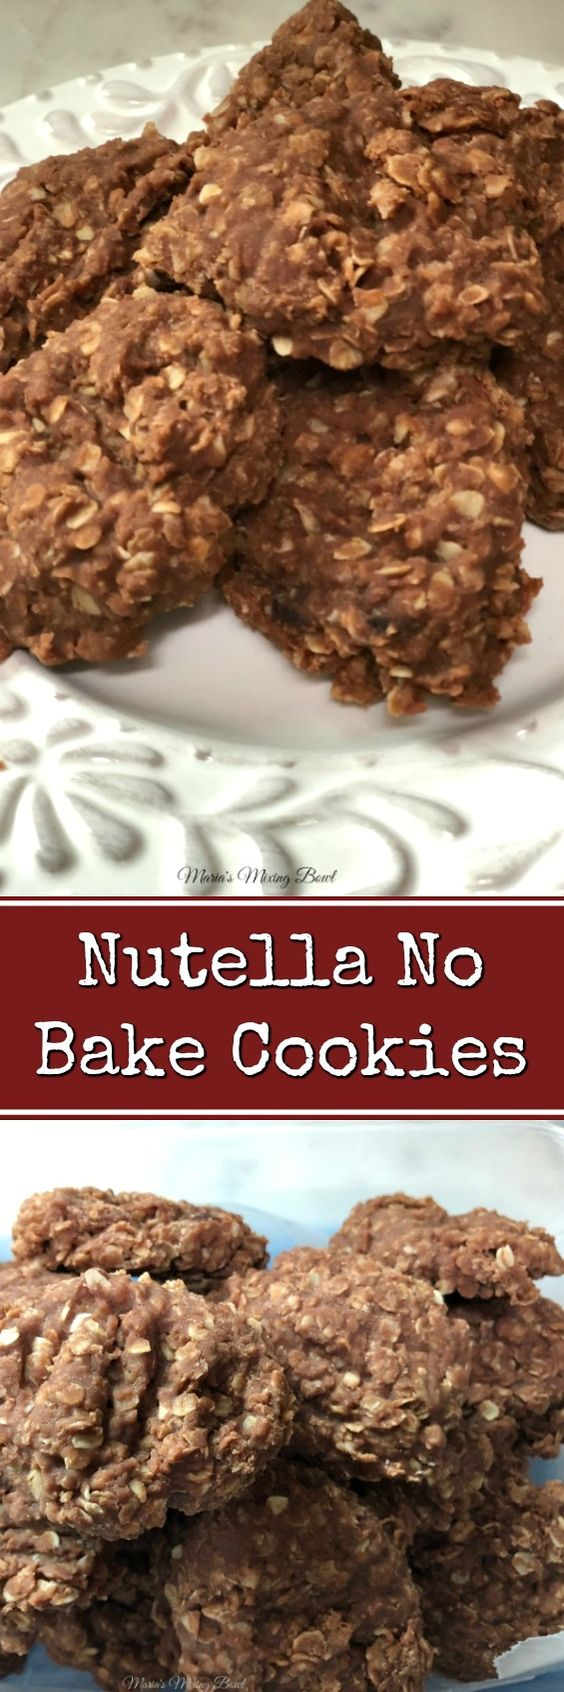 Nutella No Bake Cookies -No bake cookies are a big hit in our house. And add Nutella to the mix just takes it over the top!!